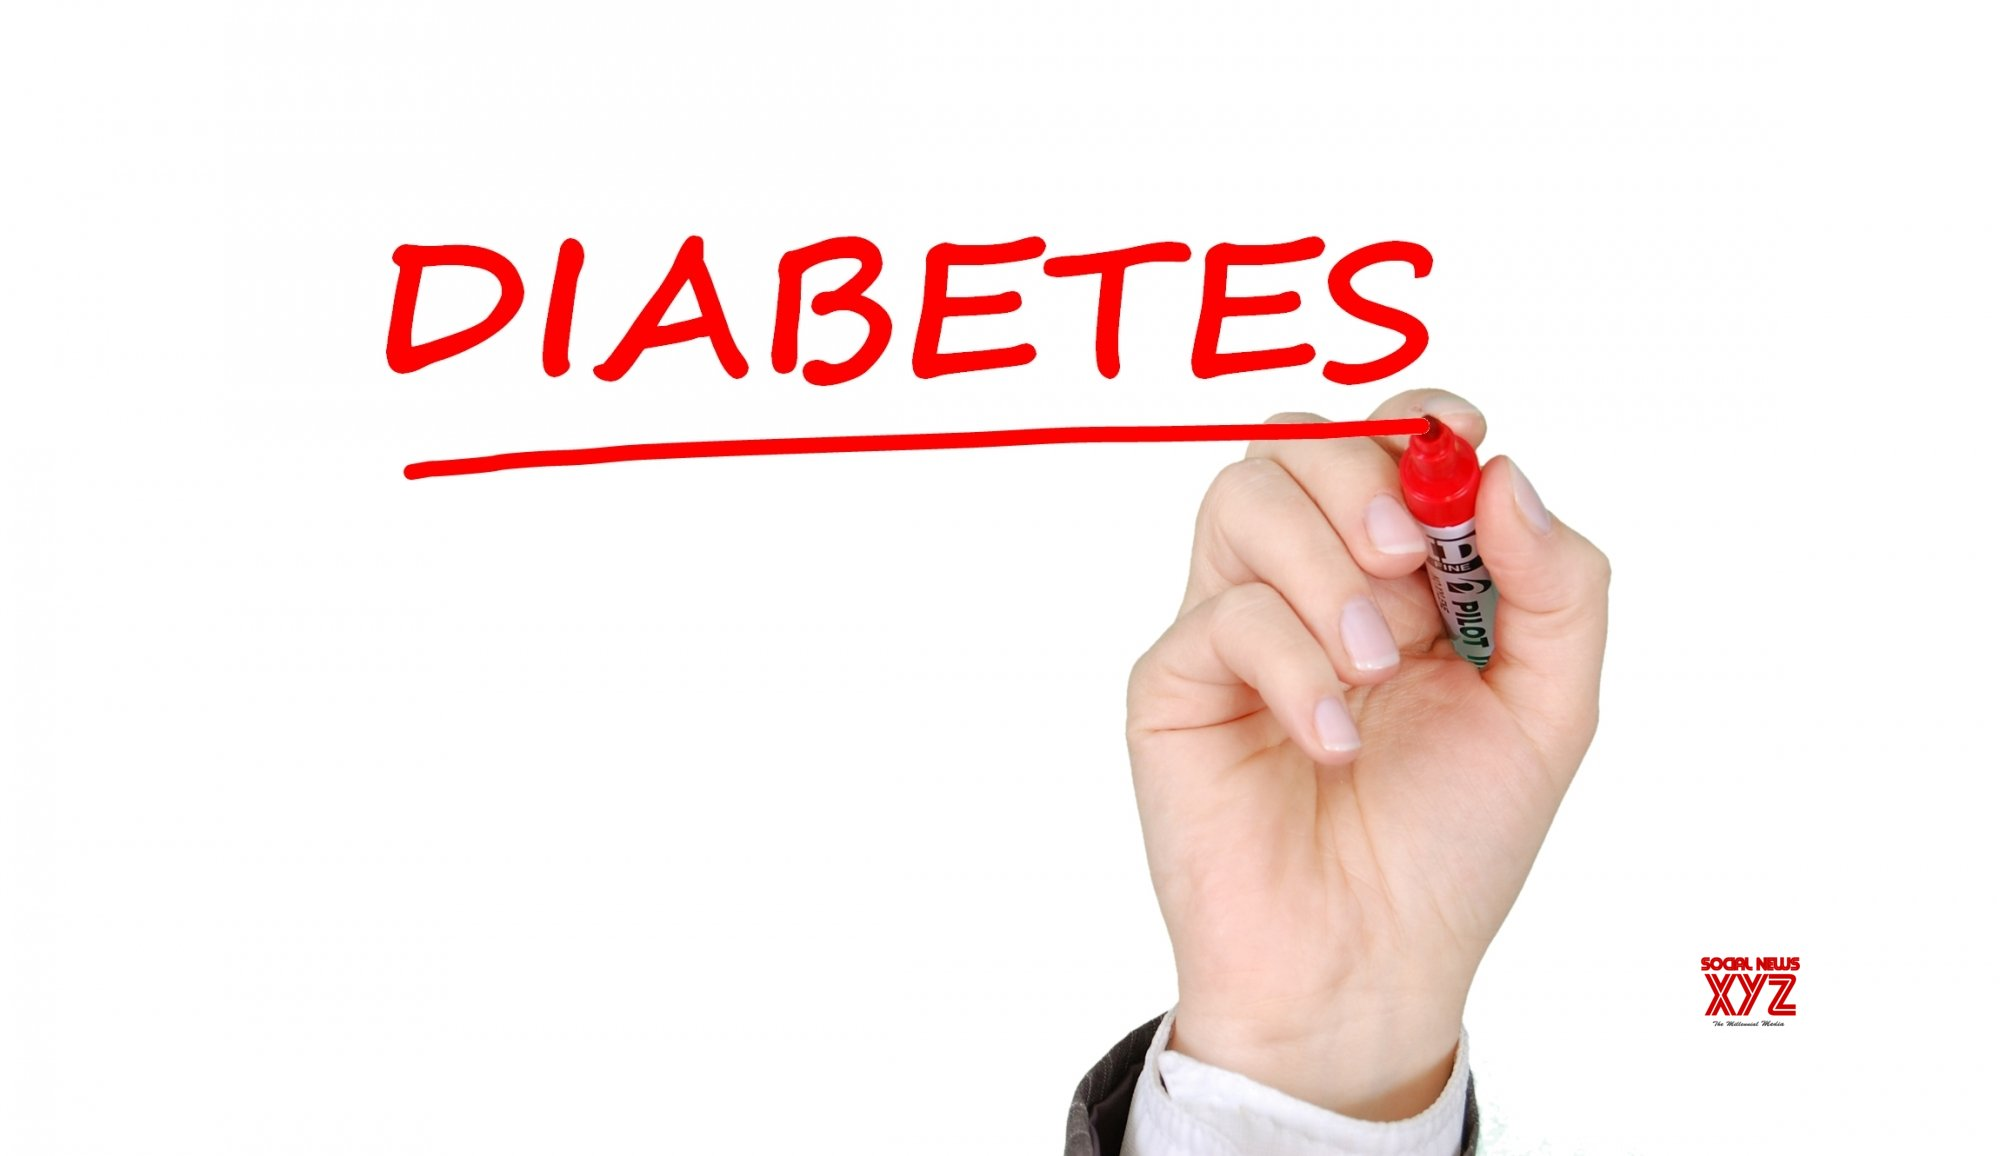 Joint surgery may shoot up sugar level in diabetics